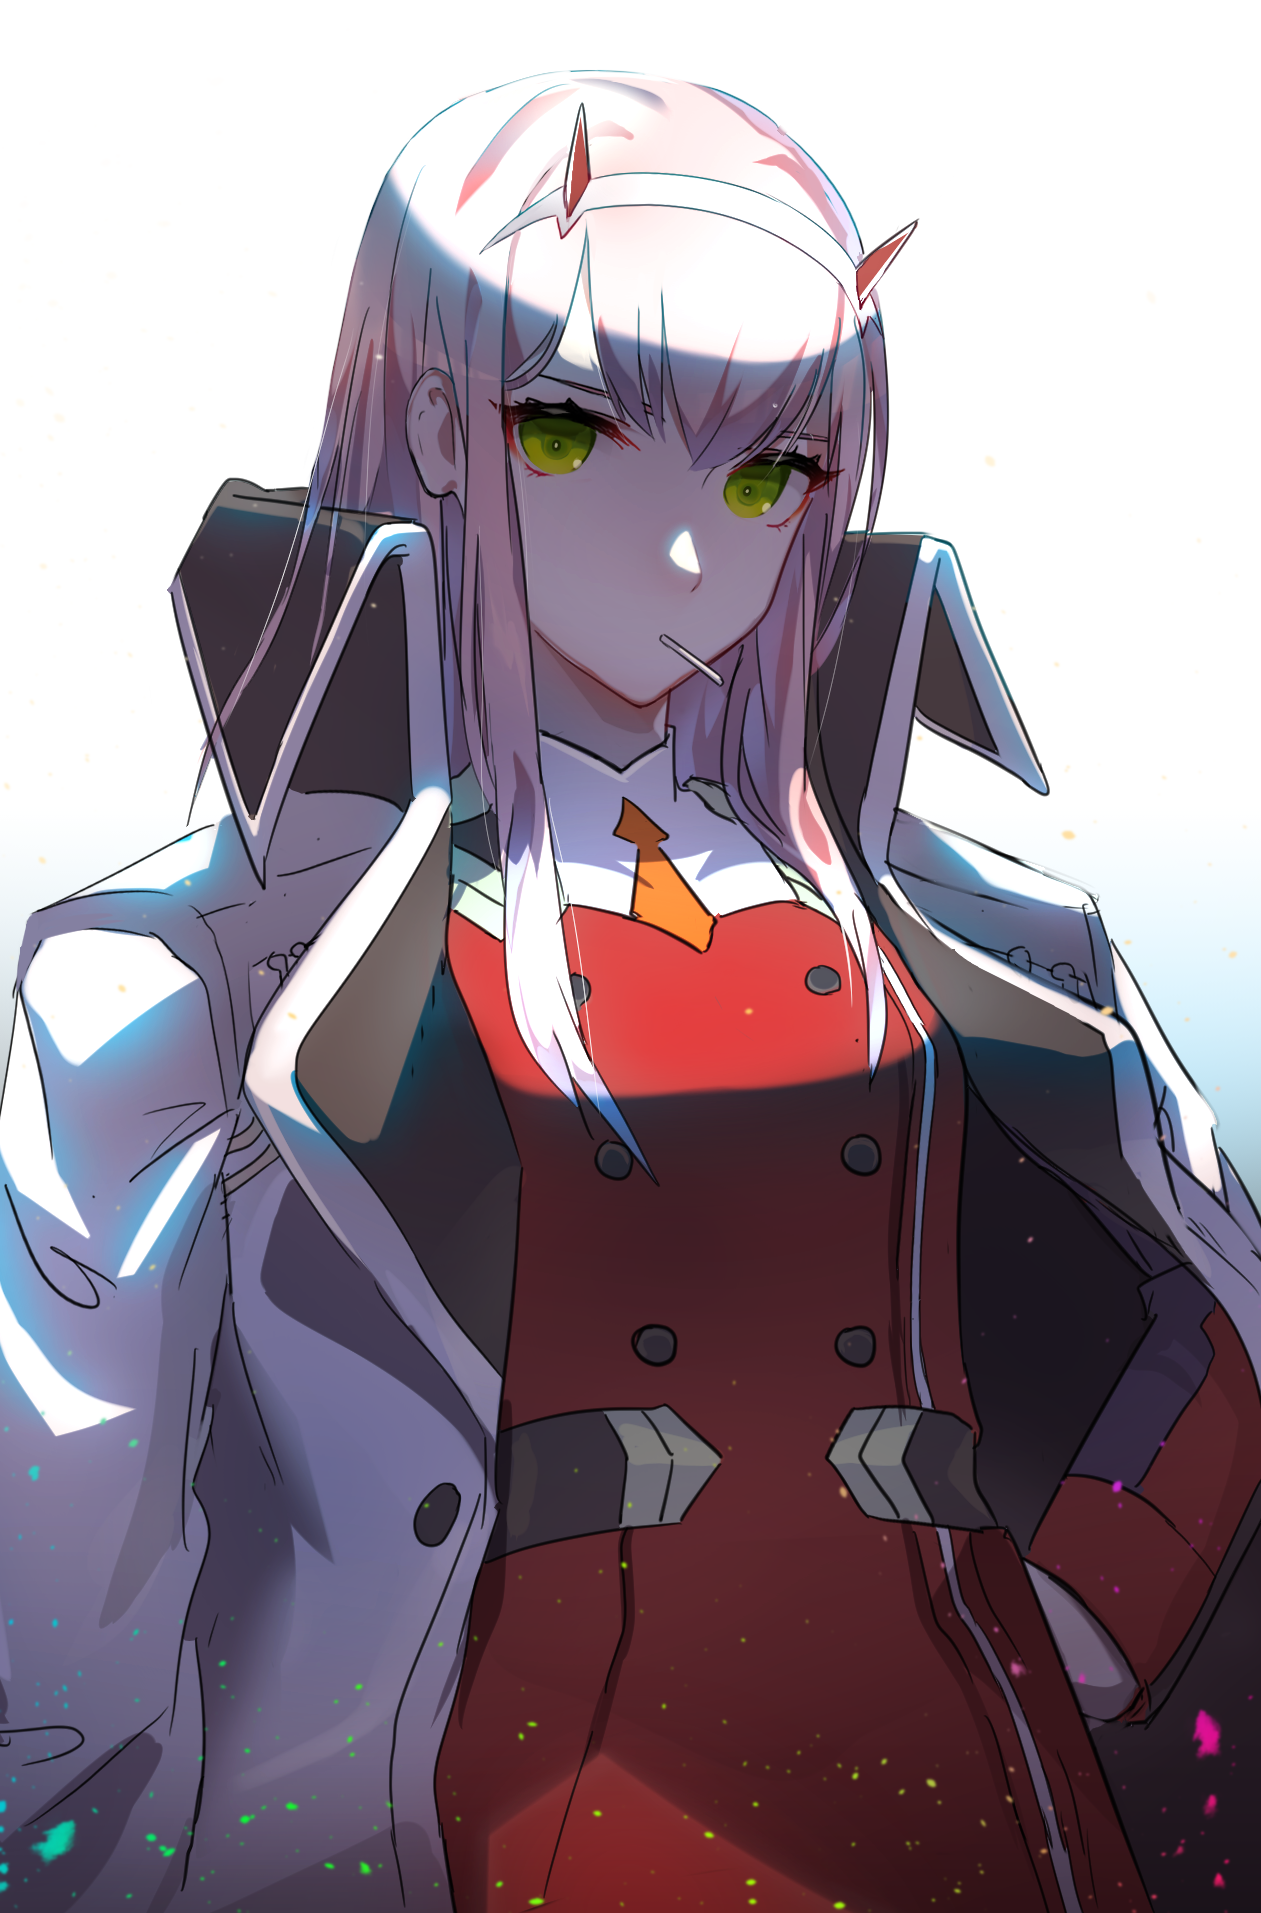 Darling in the franxx - 002 // Zero Two